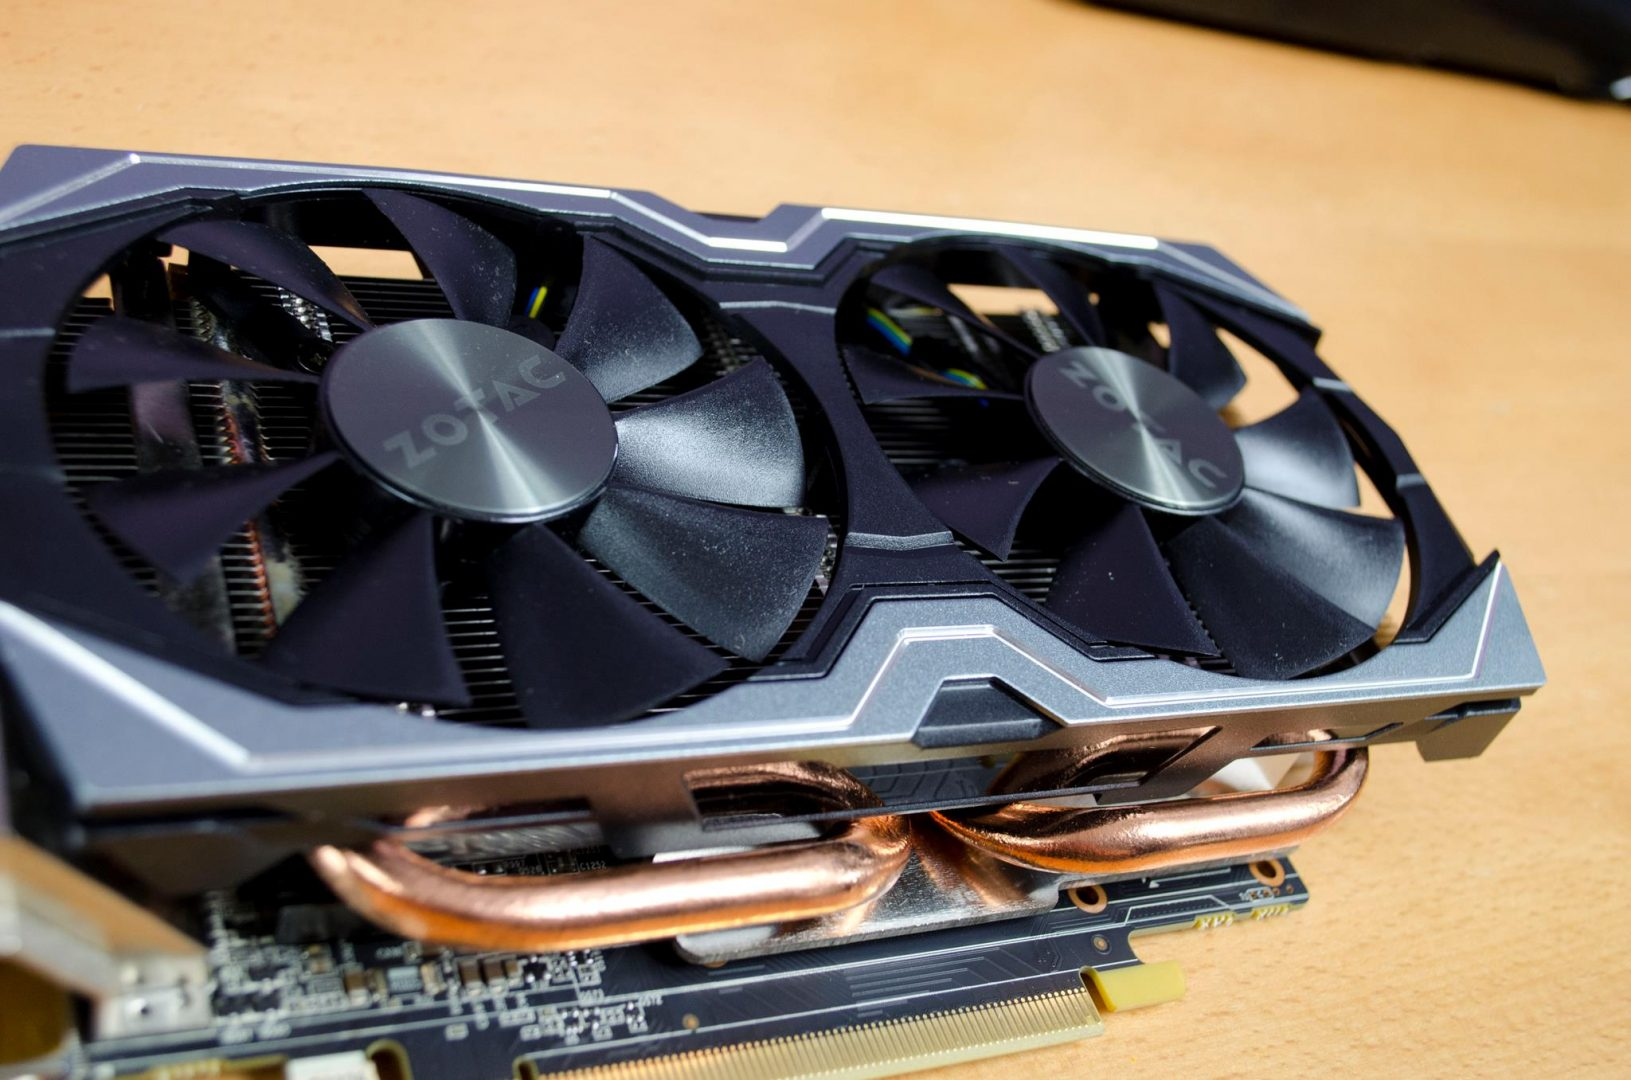 zotac geforce gtx 1060 6gb amp edition _5